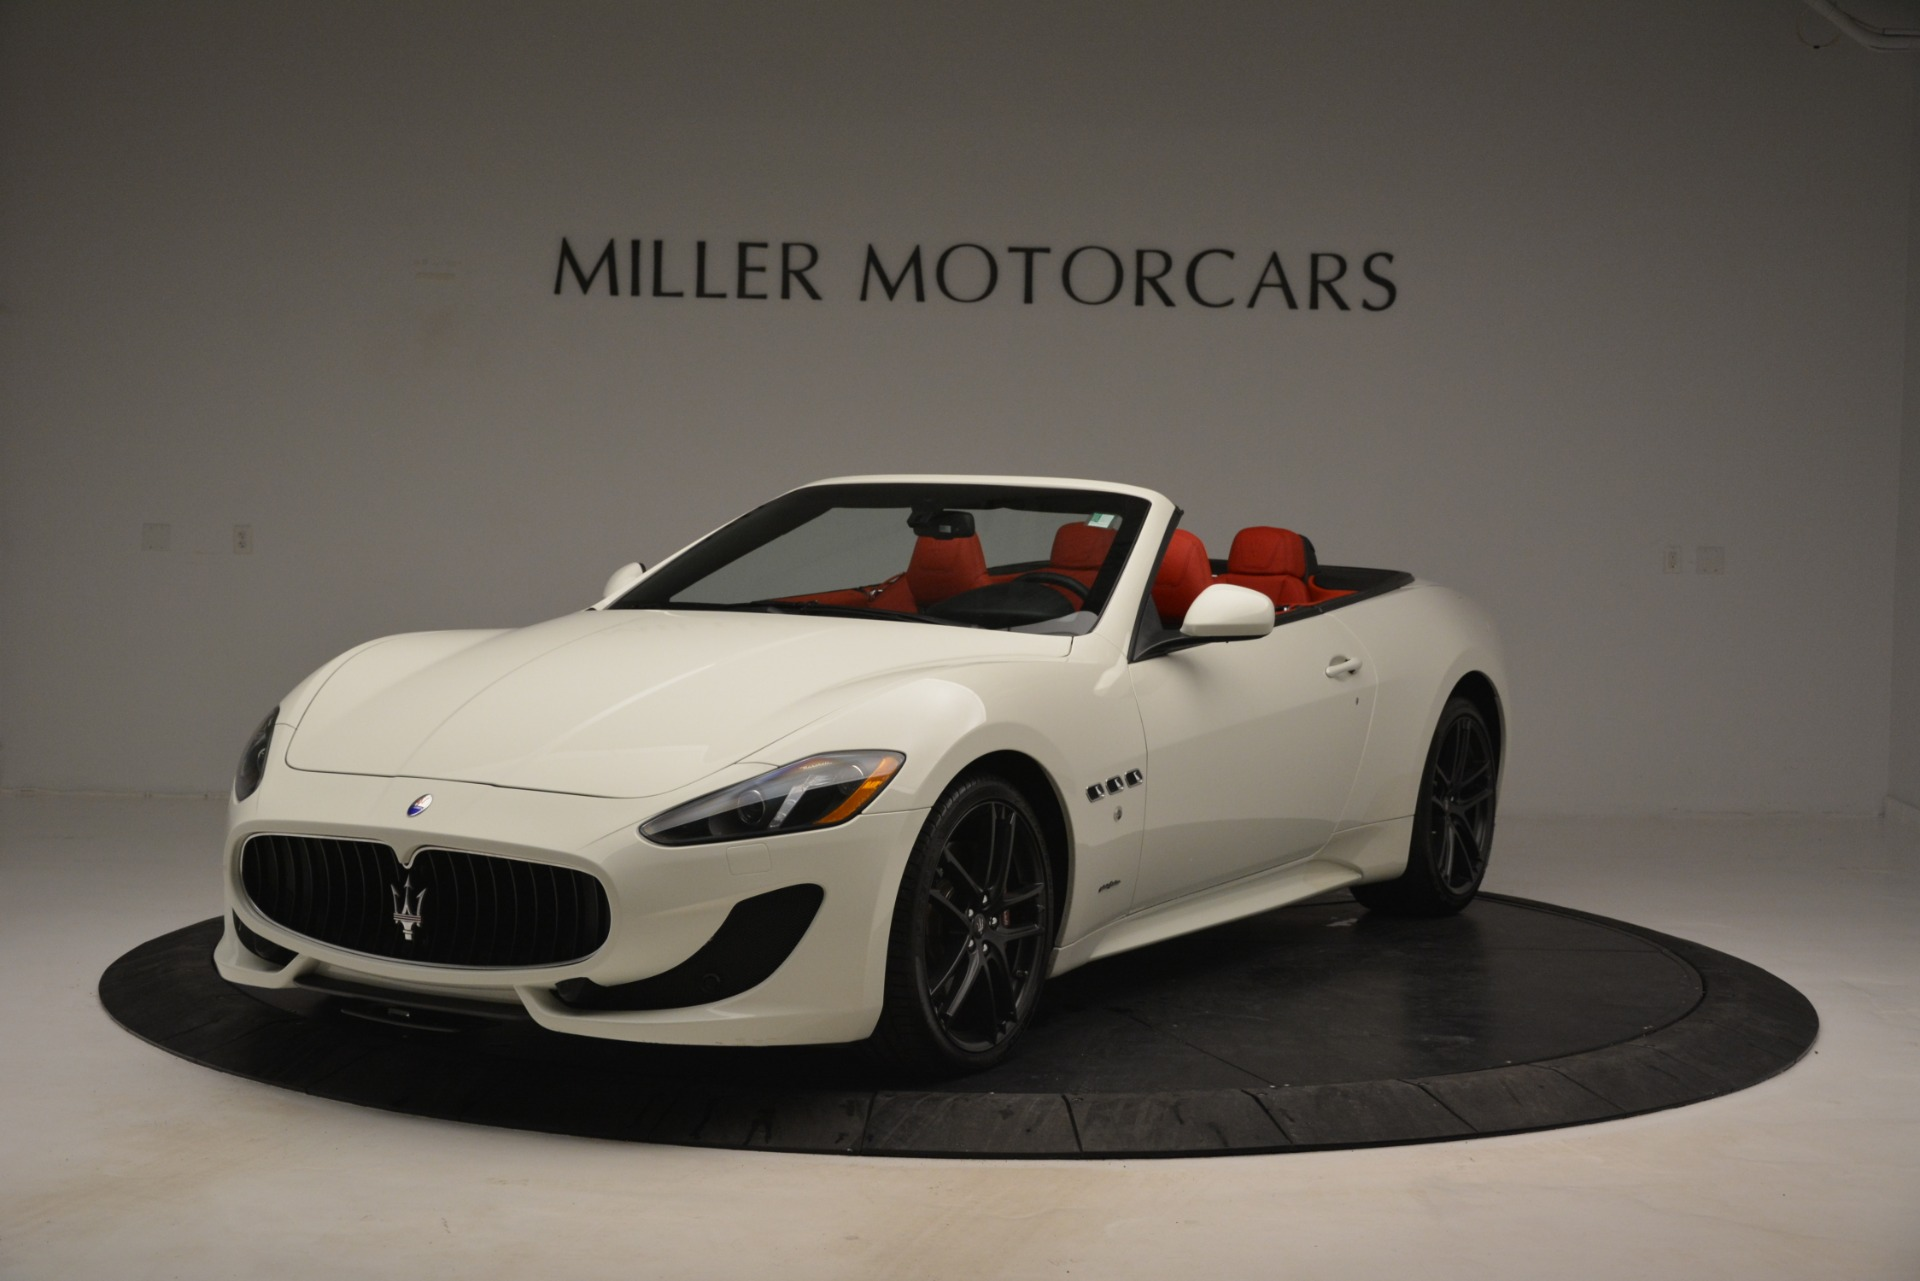 Used 2017 Maserati GranTurismo Sport for sale Sold at Rolls-Royce Motor Cars Greenwich in Greenwich CT 06830 1